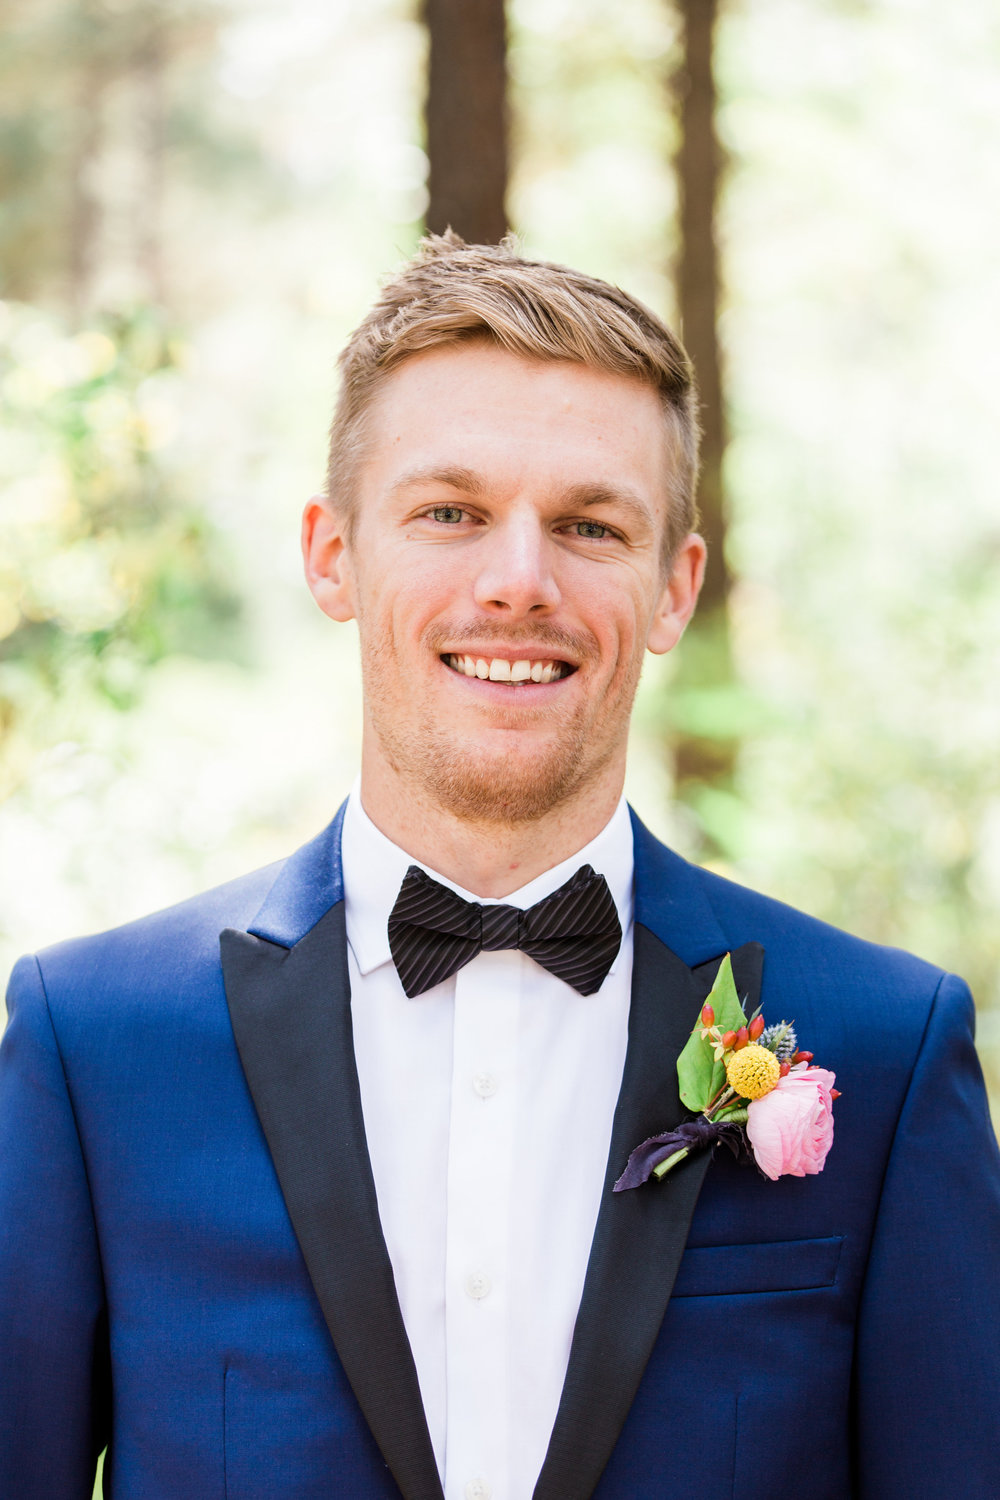 Flagstaff Forest Wedding - Navy Suit and Ranunculus Boutonniere